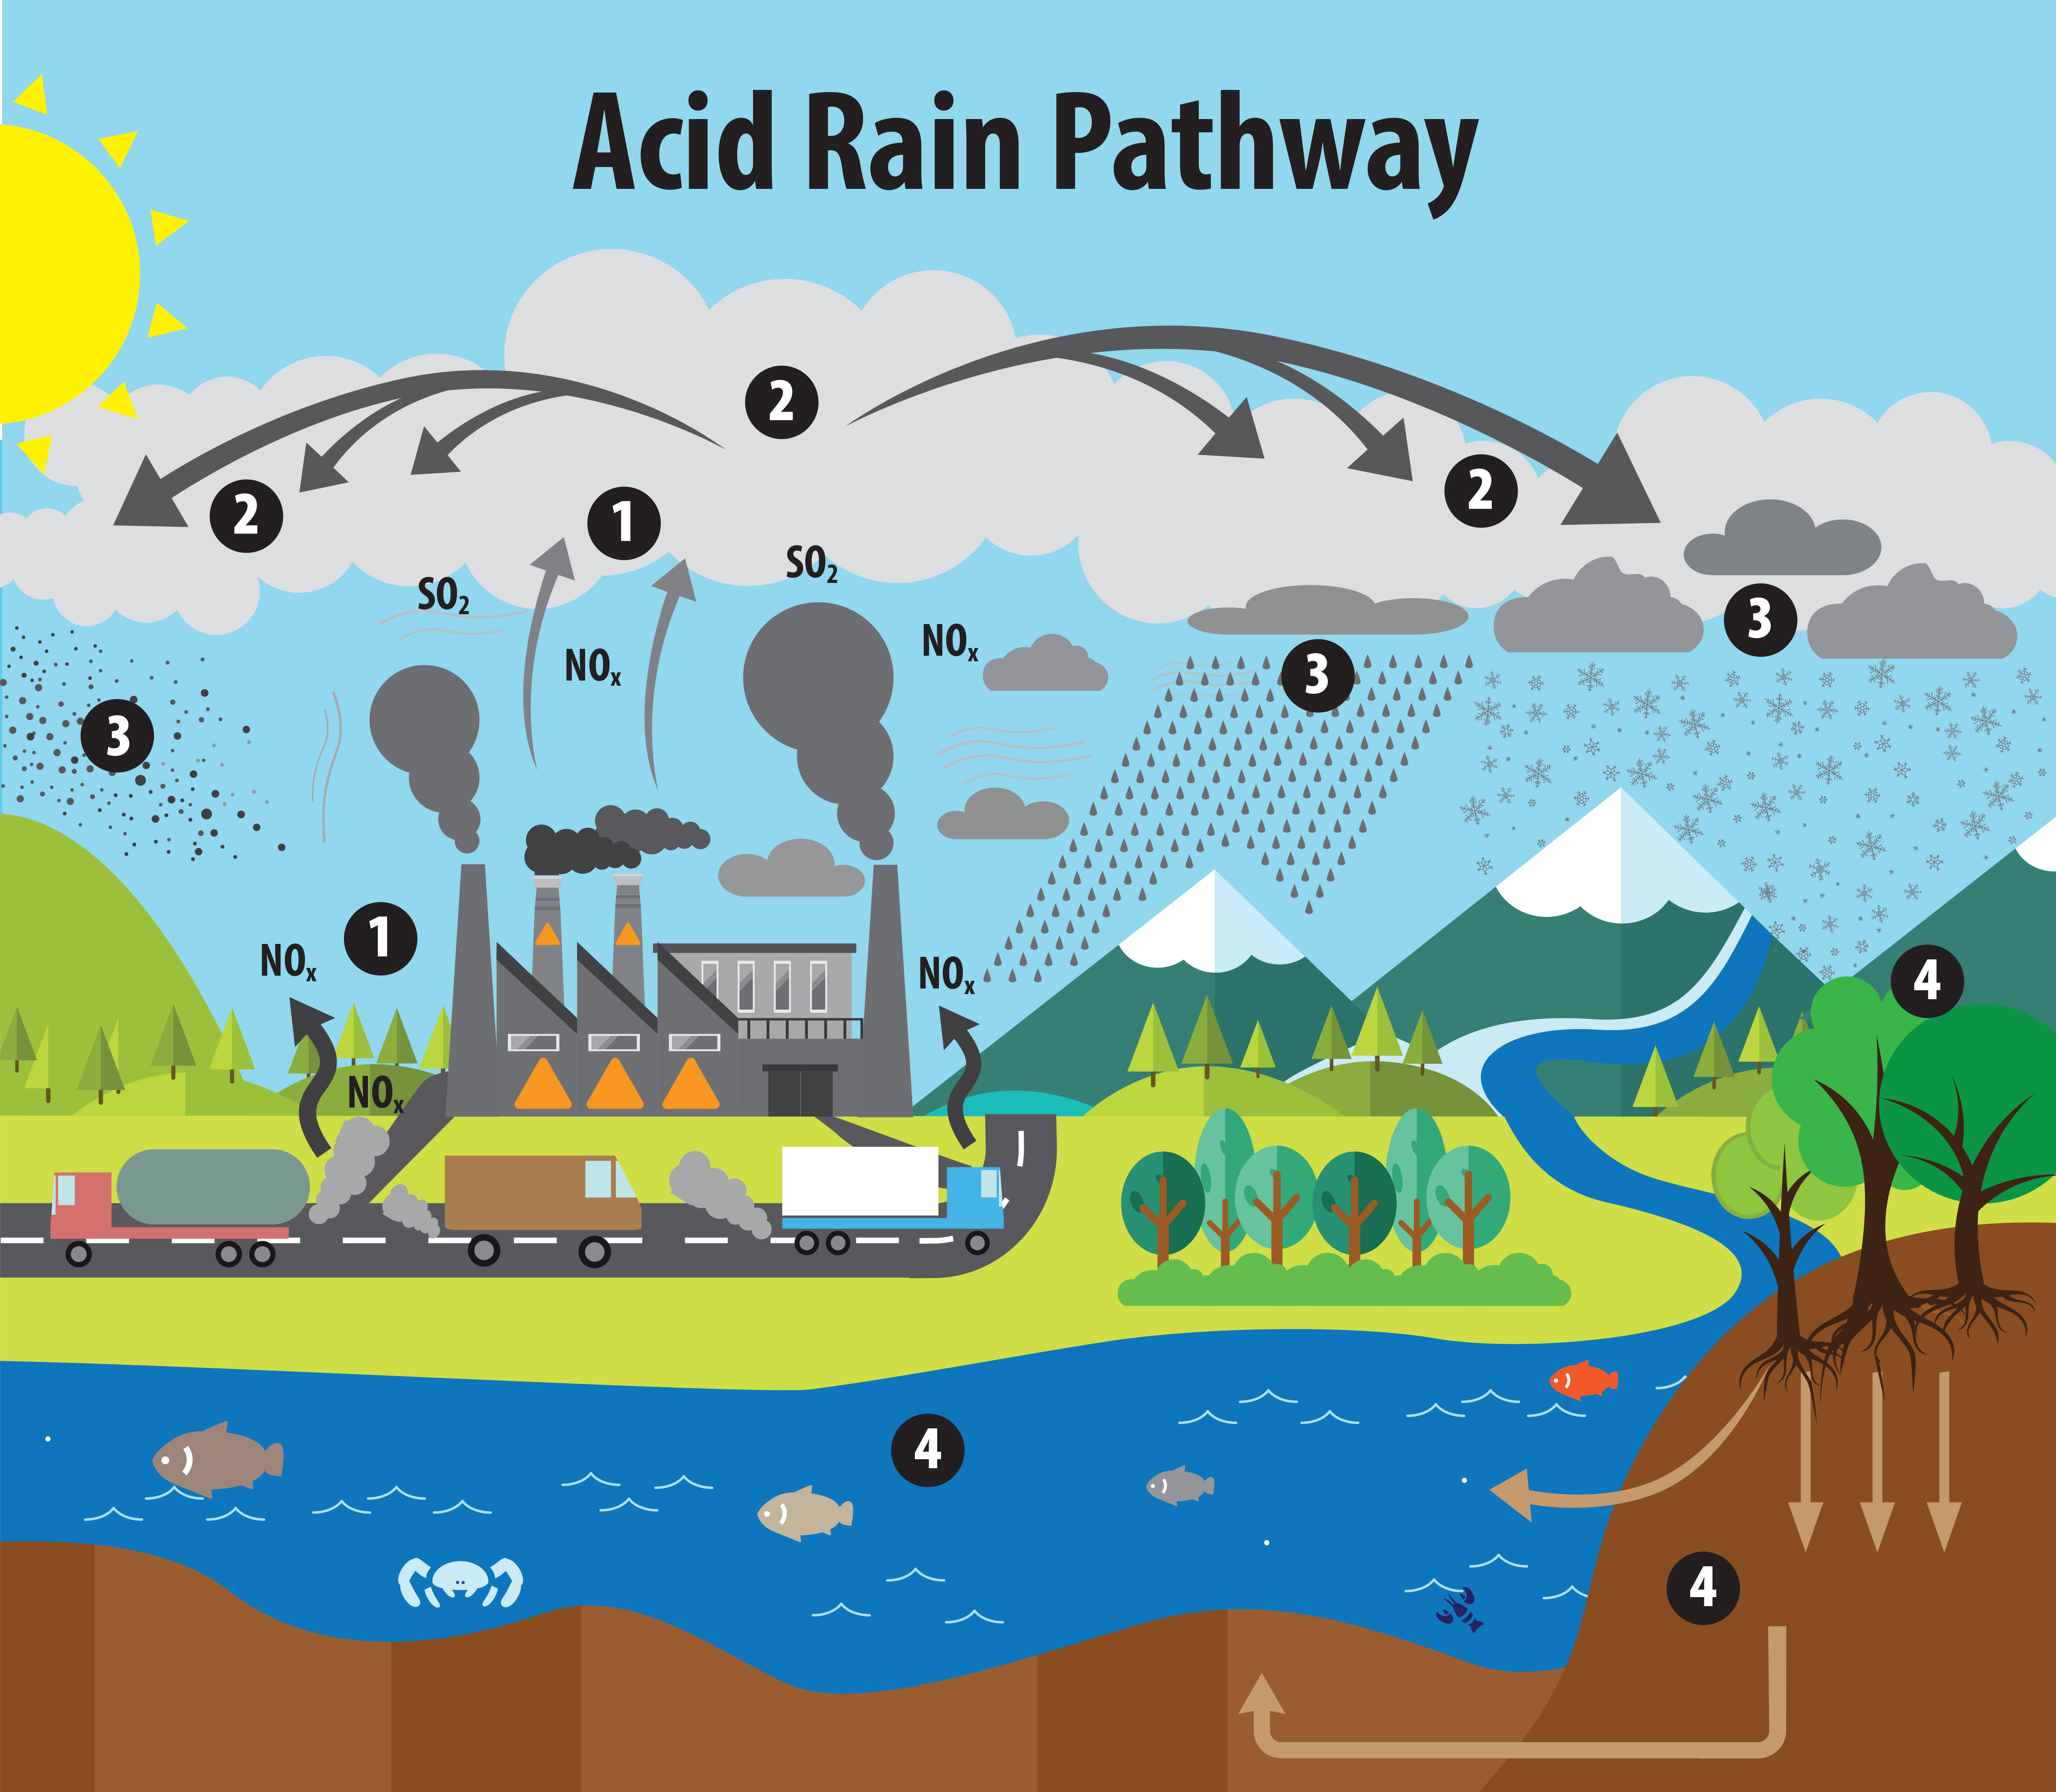 This image illustrates the pathway for acid rain in our environment.